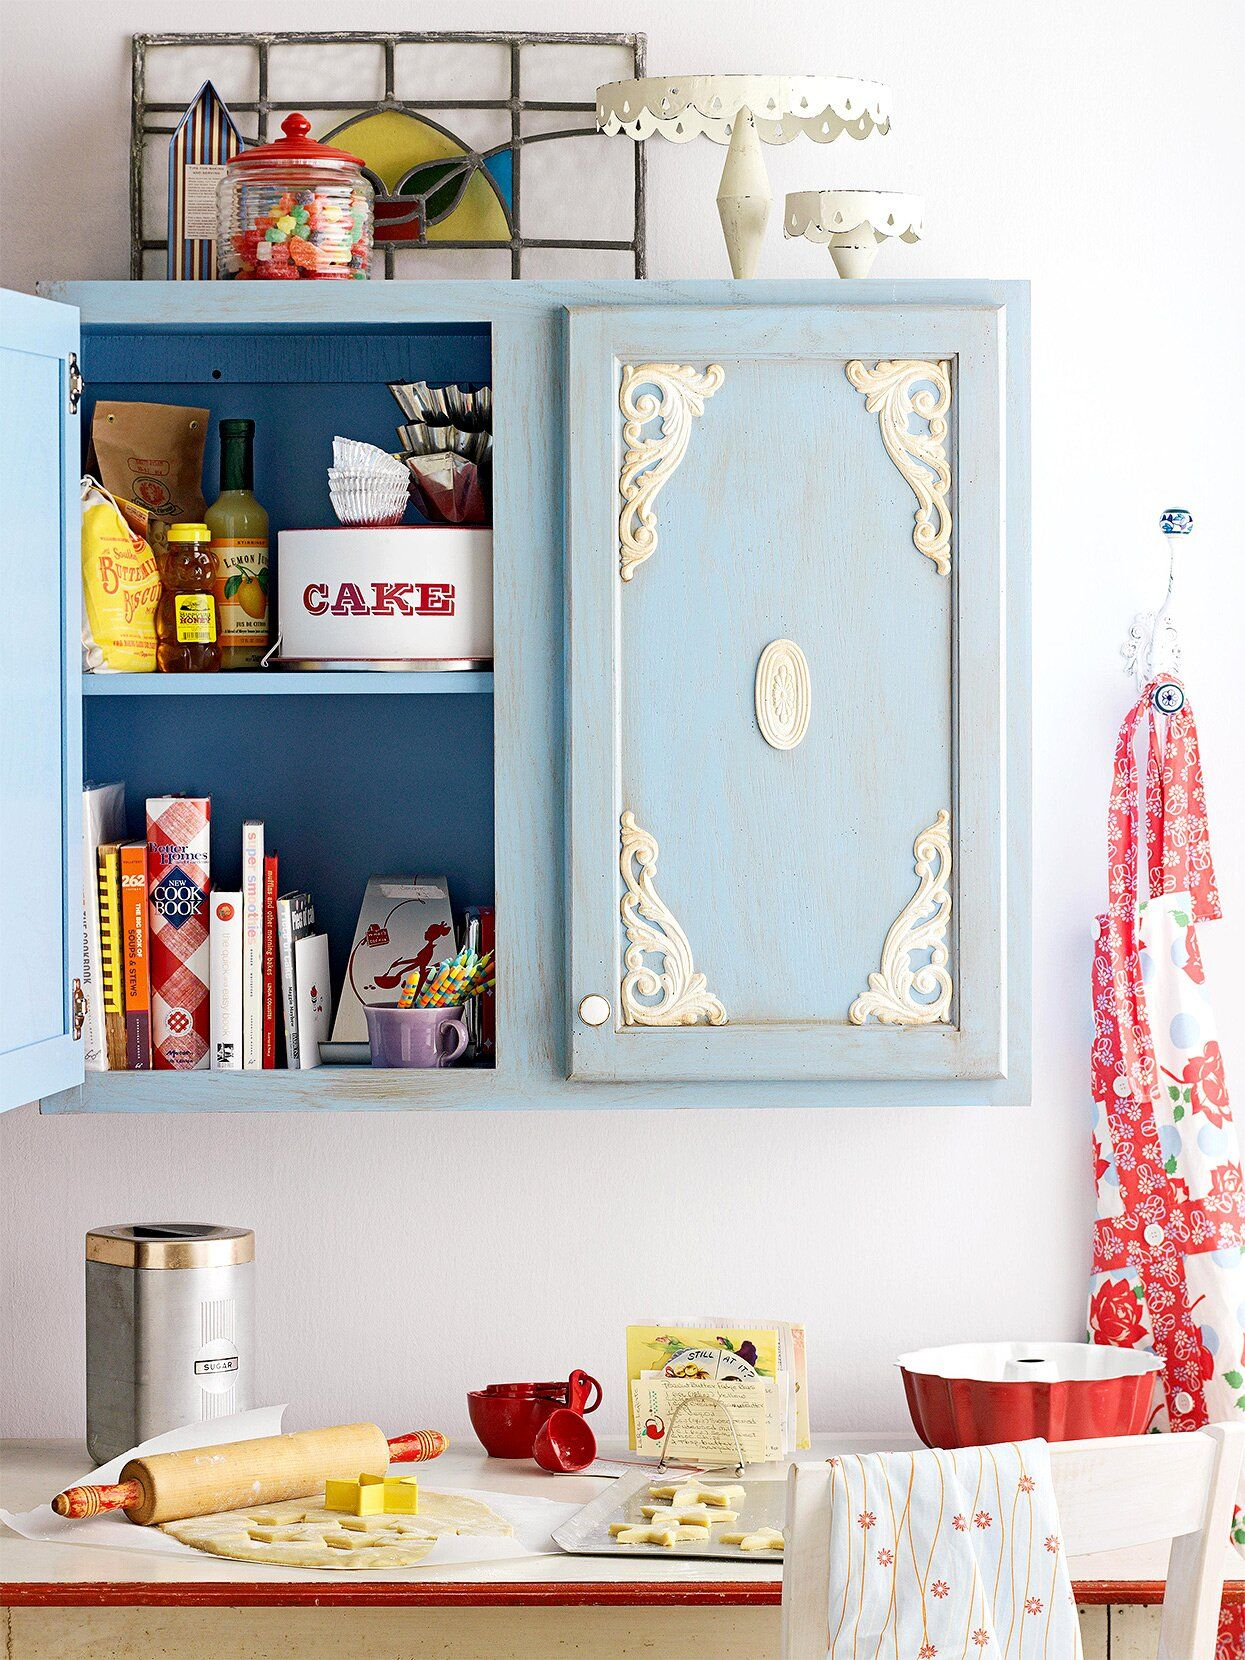 26 Diy Ways To Update Your Kitchen Cabinets Without Replacing Them In 2020 Shabby Chic Kitchen Cabinets Diy Kitchen Cabinets Shabby Chic Kitchen